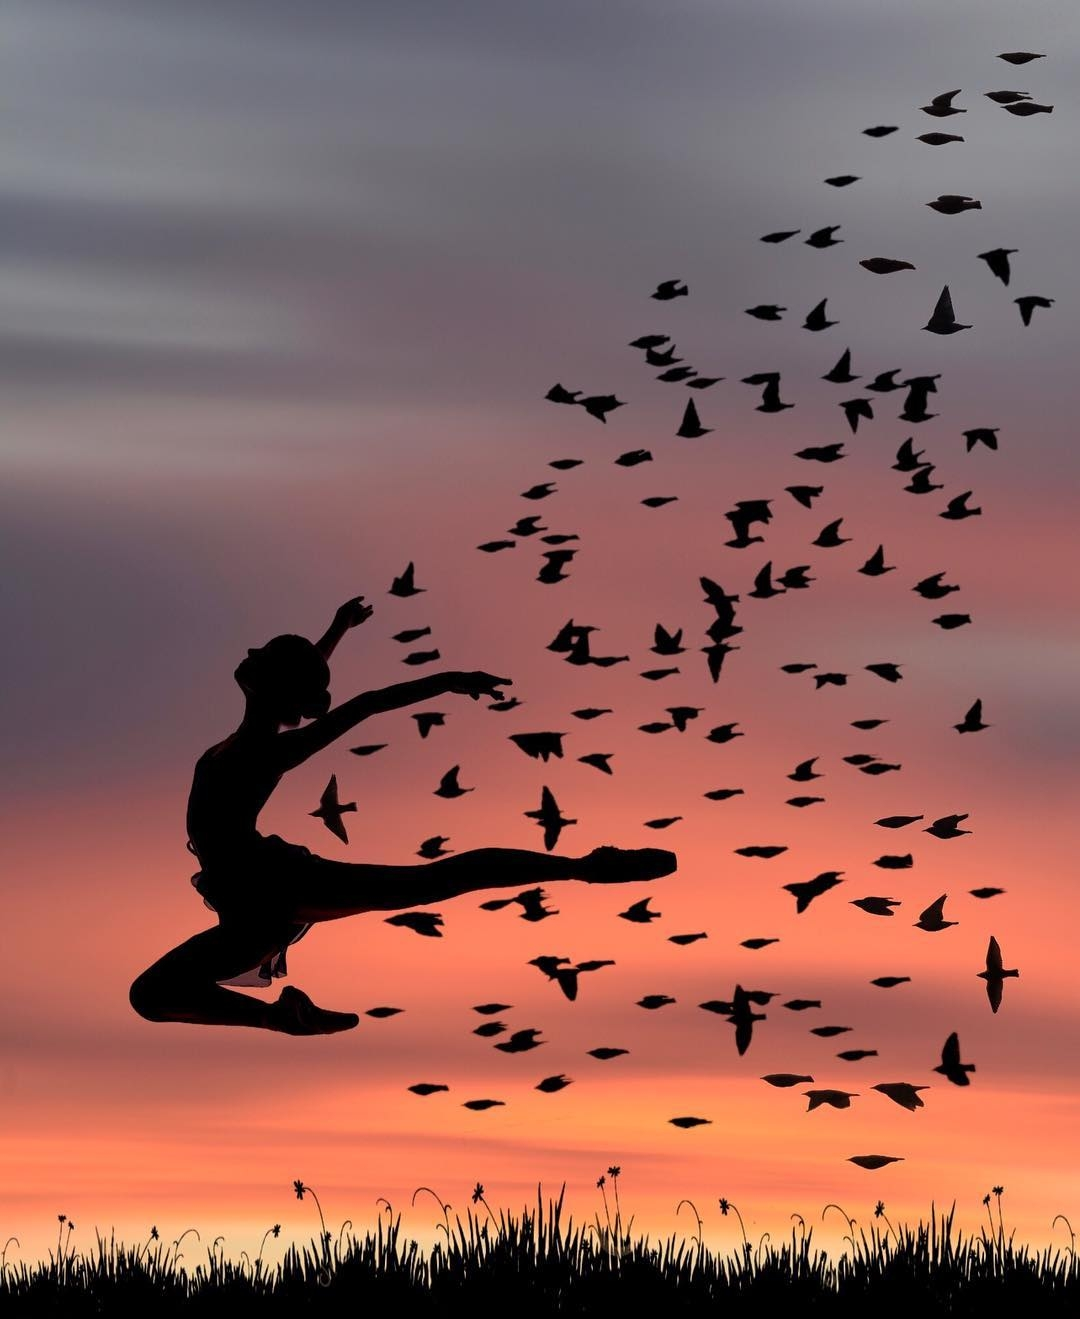 08-Dance-Dominic-Liam-Beautifully-Manipulated-Pictures-at-Sunrise-www-designstack-co